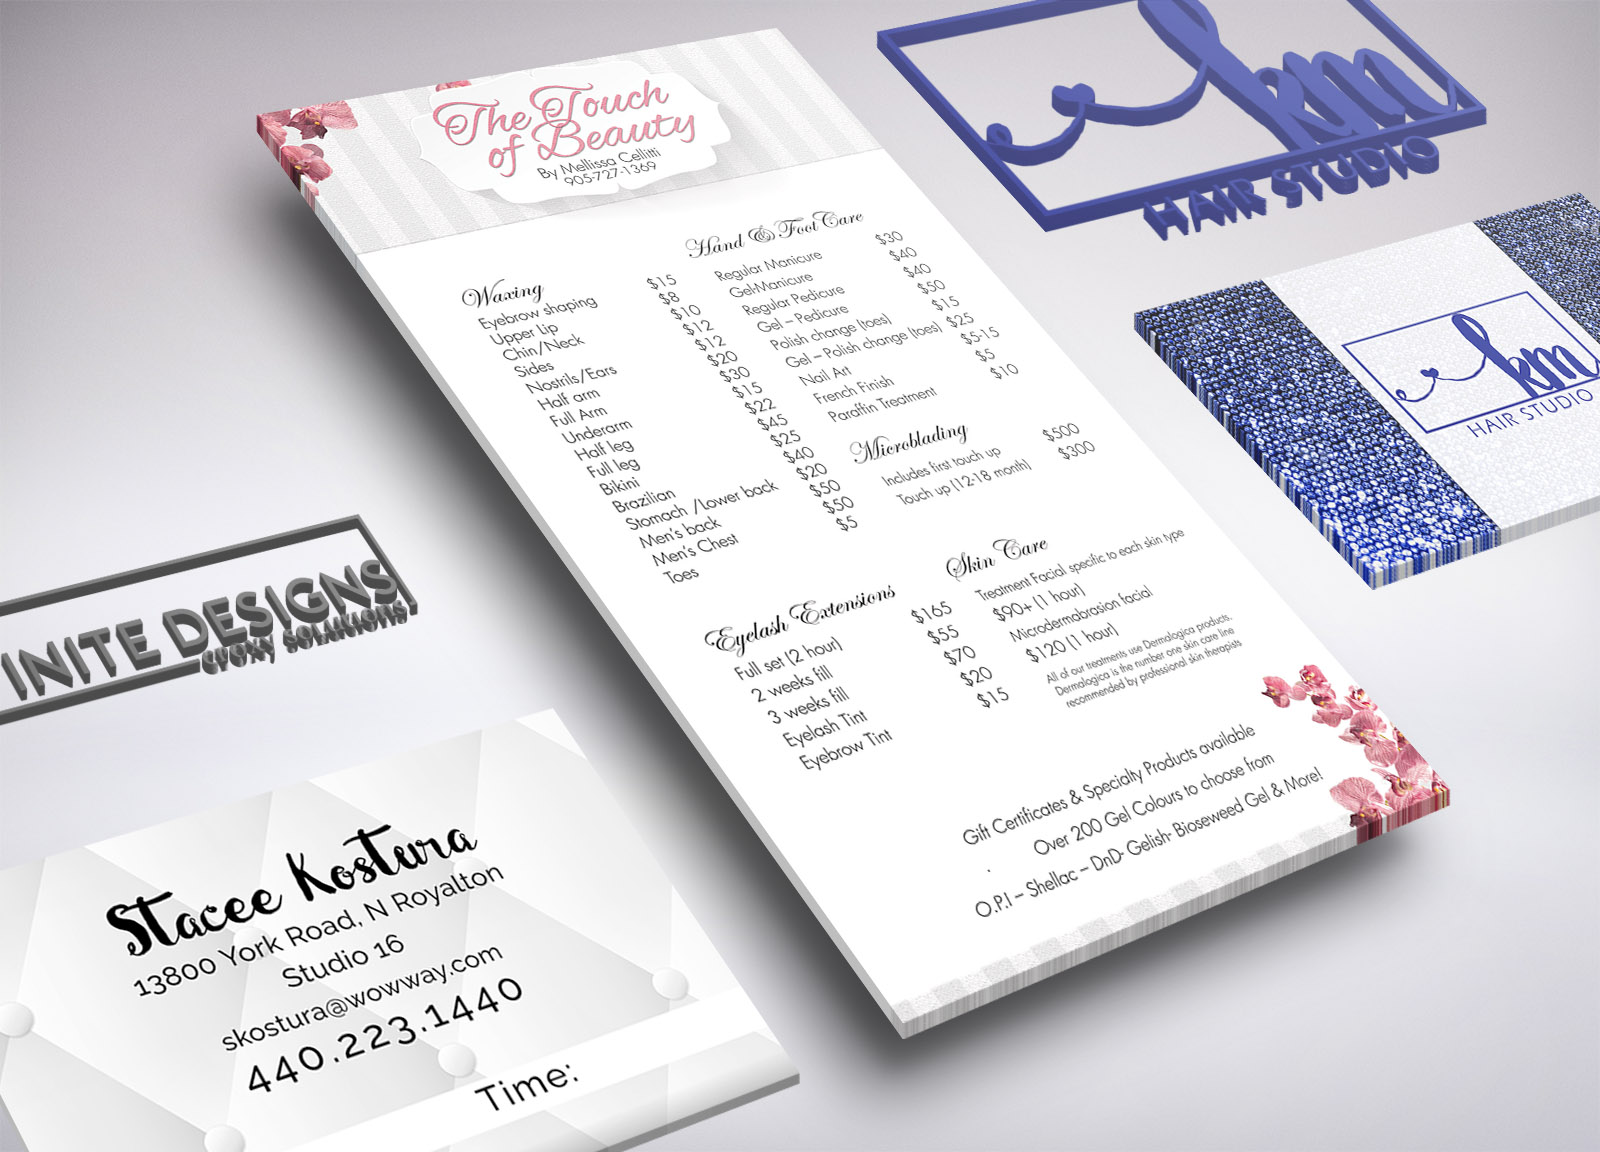 Branding Package - LogoFlyer/Sell Sheet or EDDM/Mailer DesignBusiness Card - up to 5 staff members, prepped and ready to print*Branding Board**Website Design (up to 8 pages)$1625*ask us for a printing quote**your custom logo options, color options, and consistent imaging for your brand